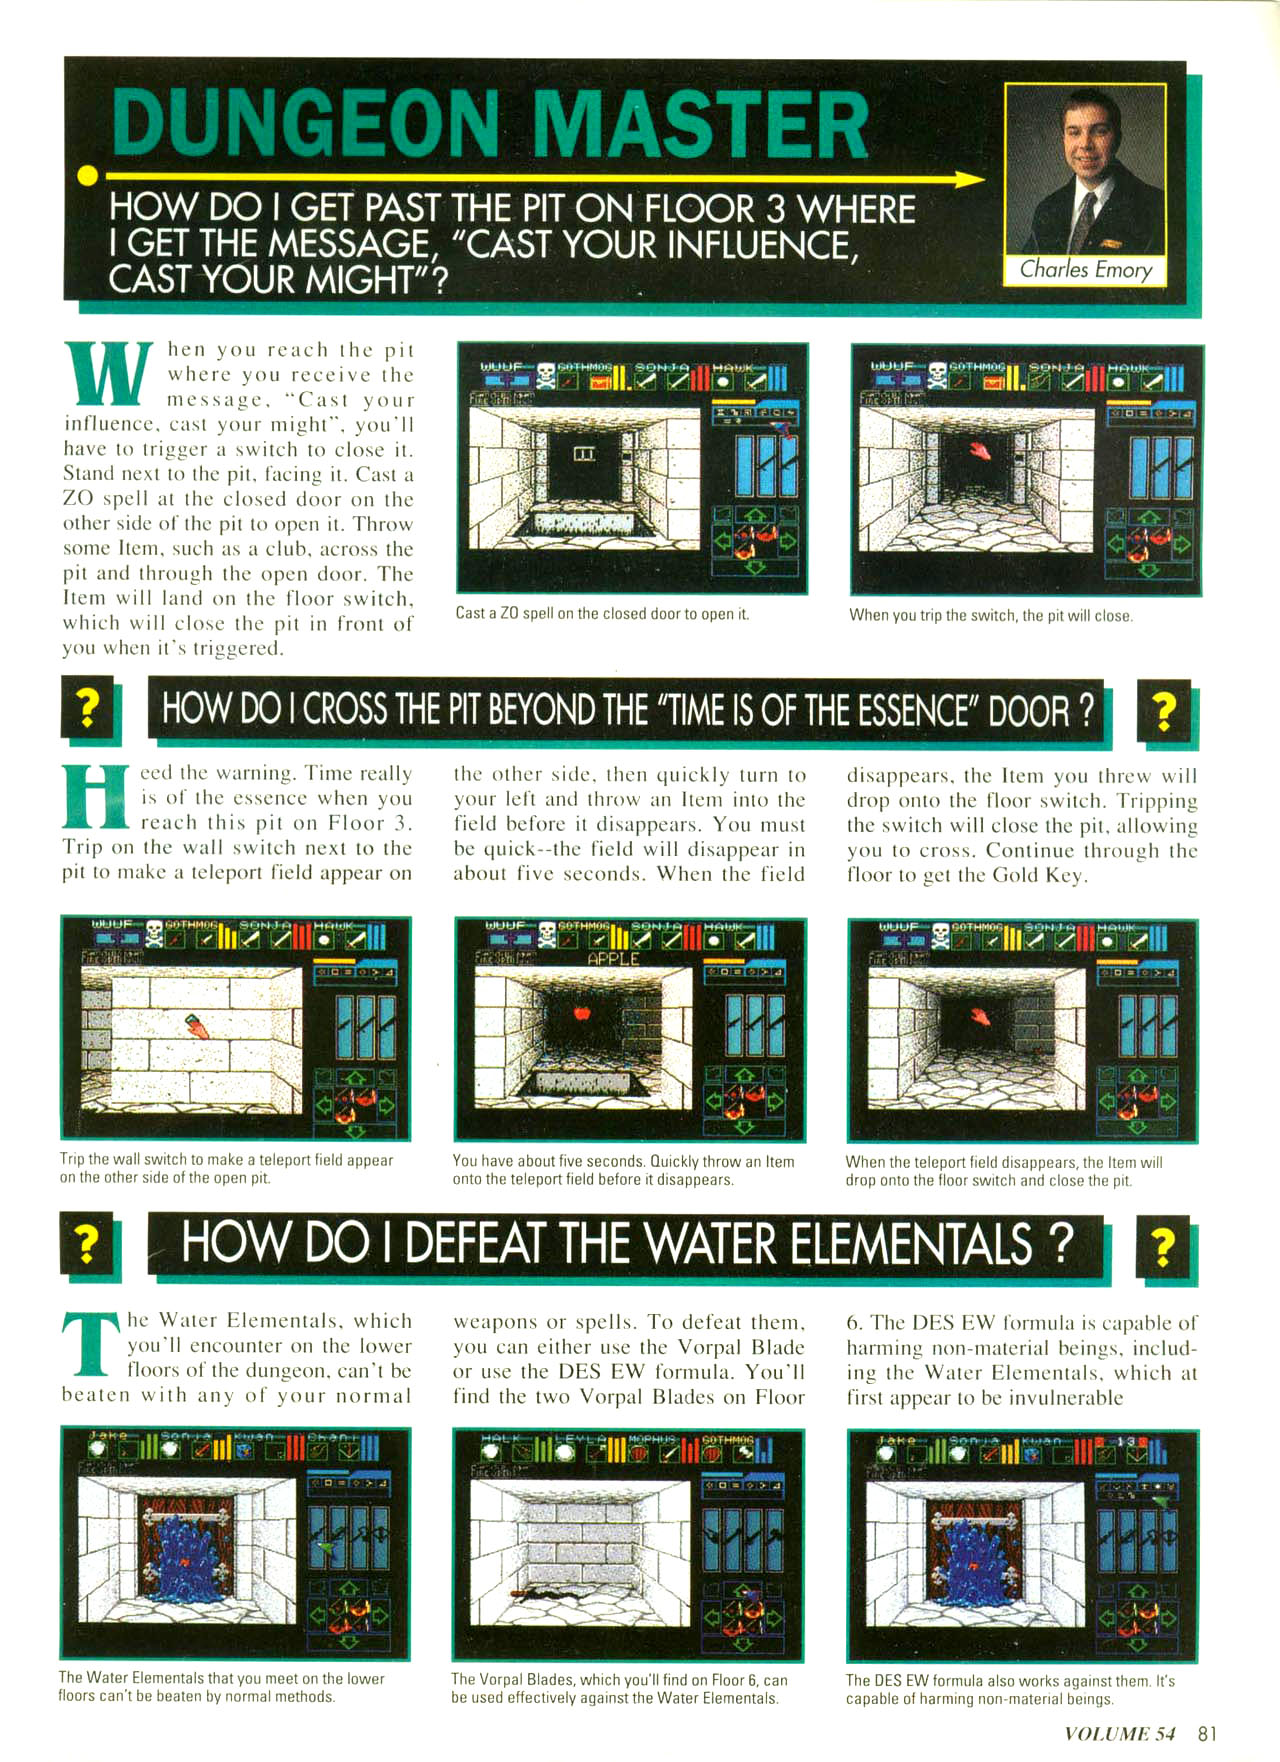 Dungeon Master for Super NES Hints published in American magazine 'Nintendo Power', Issue #54 November 1993, Page 81